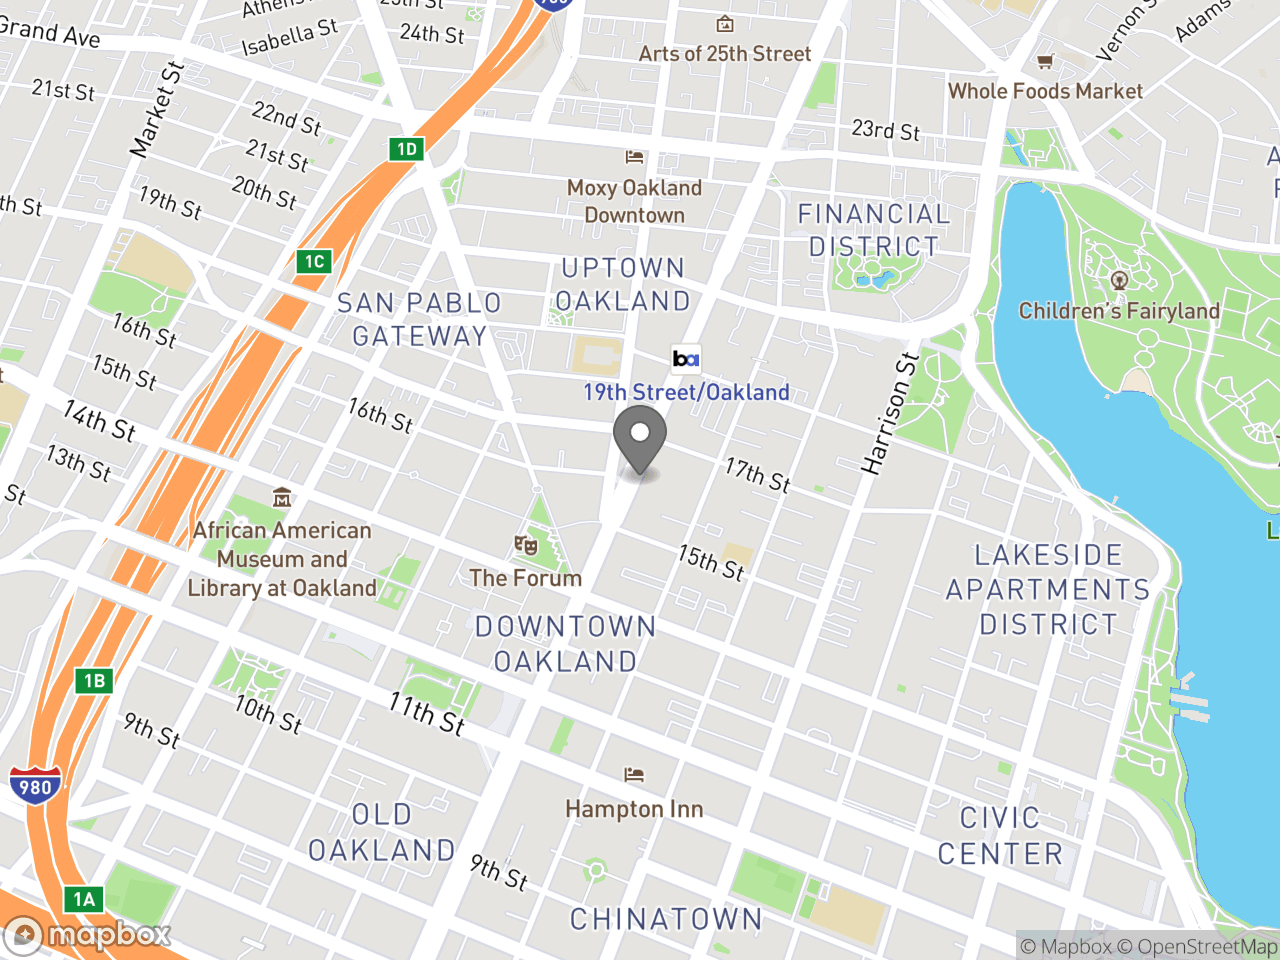 Map location for October 1, 2019 SPUR Public Discussion - Downtown Oakland Specific Plan, located at 1544 Broadway in Oakland, CA 94612